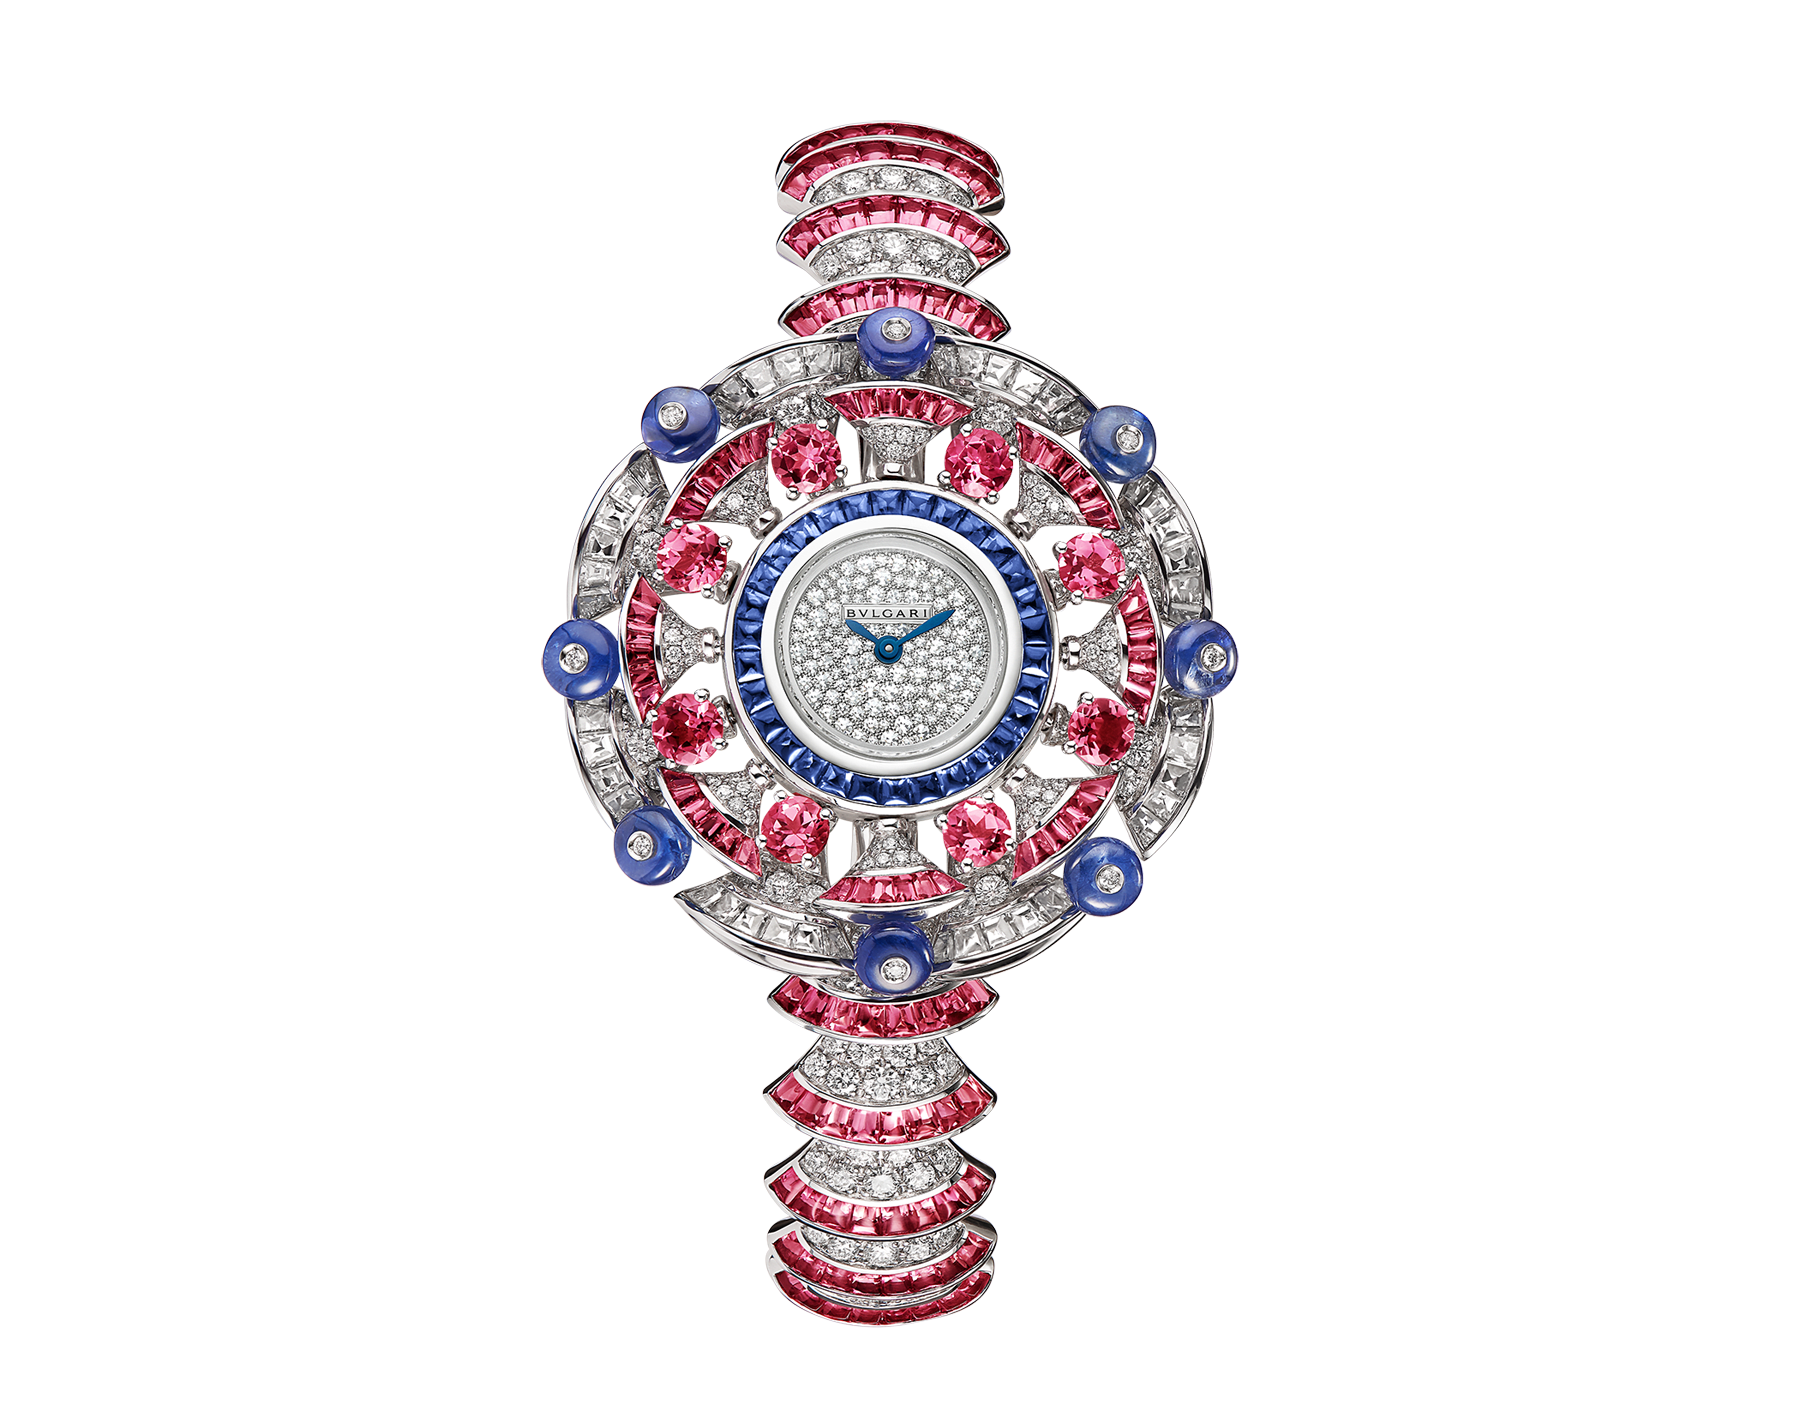 DIVAS' DREAM watch with 18 kt white gold case set with baguette and brilliant-cut diamonds, round and buff-cut rubellites, buff-cut sapphires and sapphire beads, snow pavé dial, 18 kt white gold bracelet set with brilliant-cut diamonds and buff-cut rubellites 102153 image 1